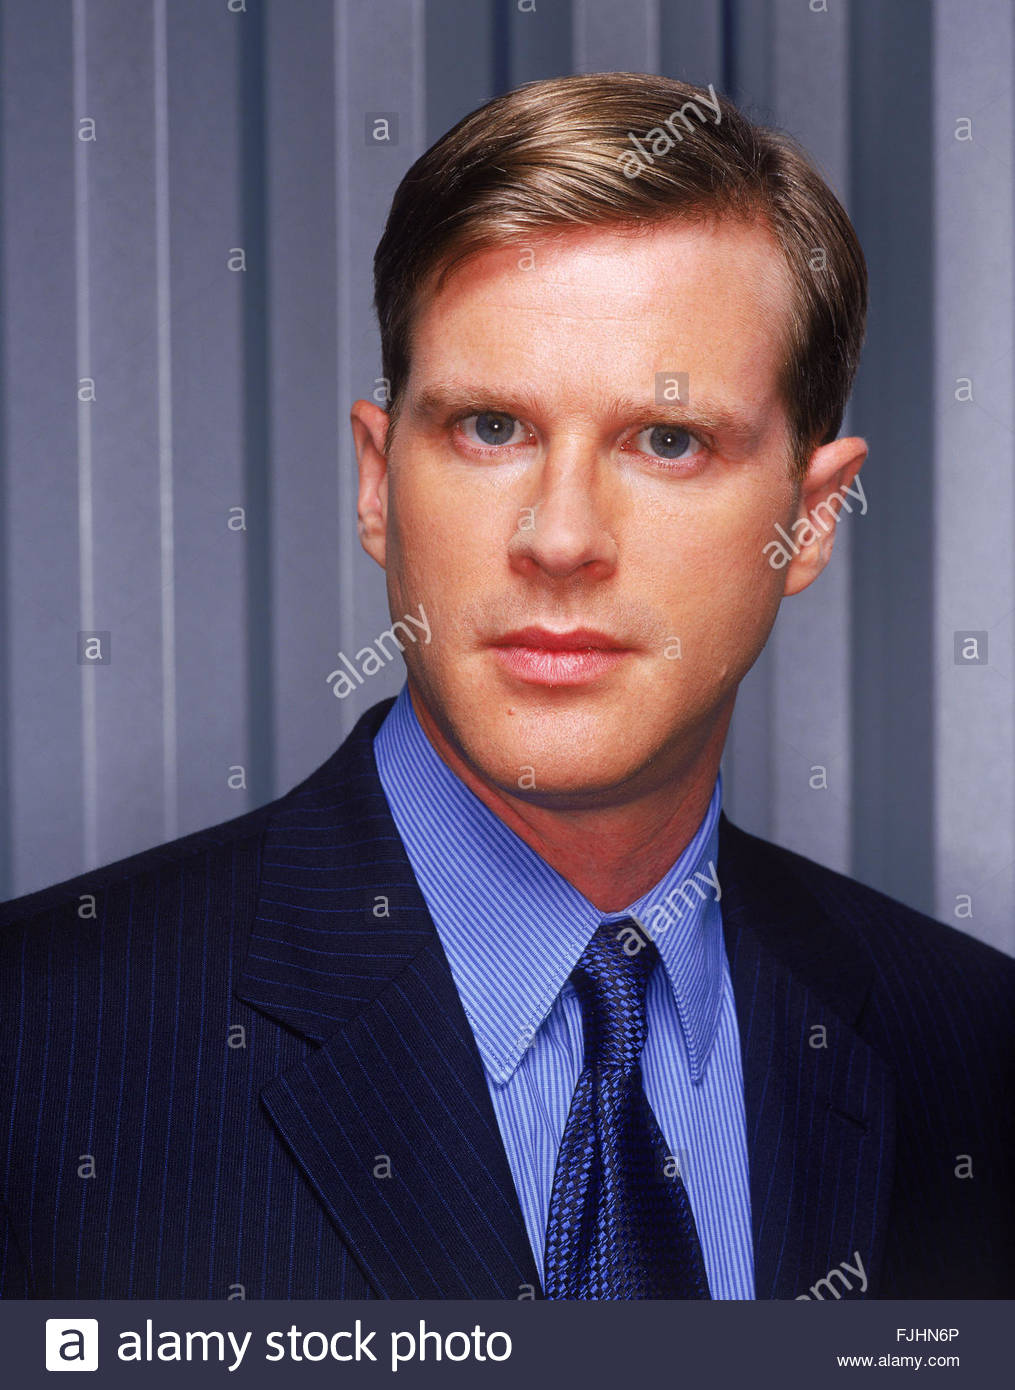 CARY ELWES THE X FILES (1993) - Stock Image